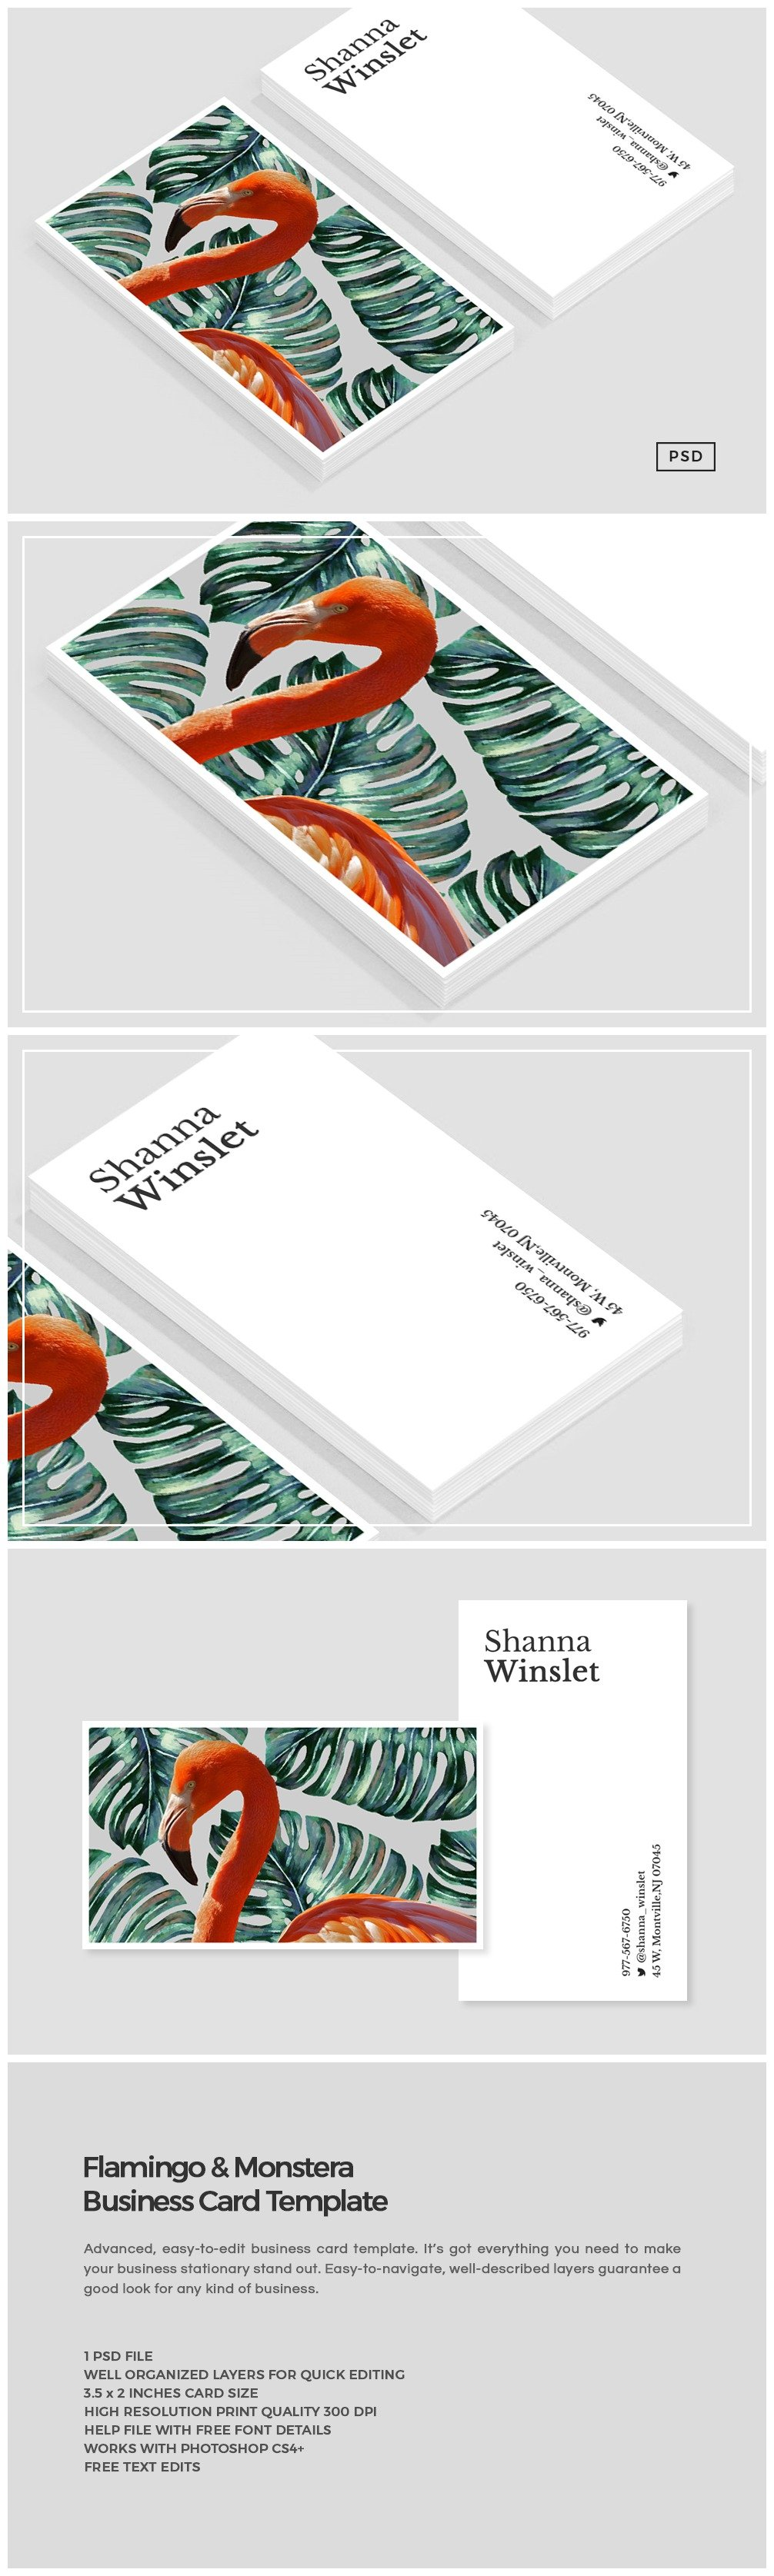 Flamingo monstera business card business card templates flamingo monstera business card business card templates creative market reheart Image collections